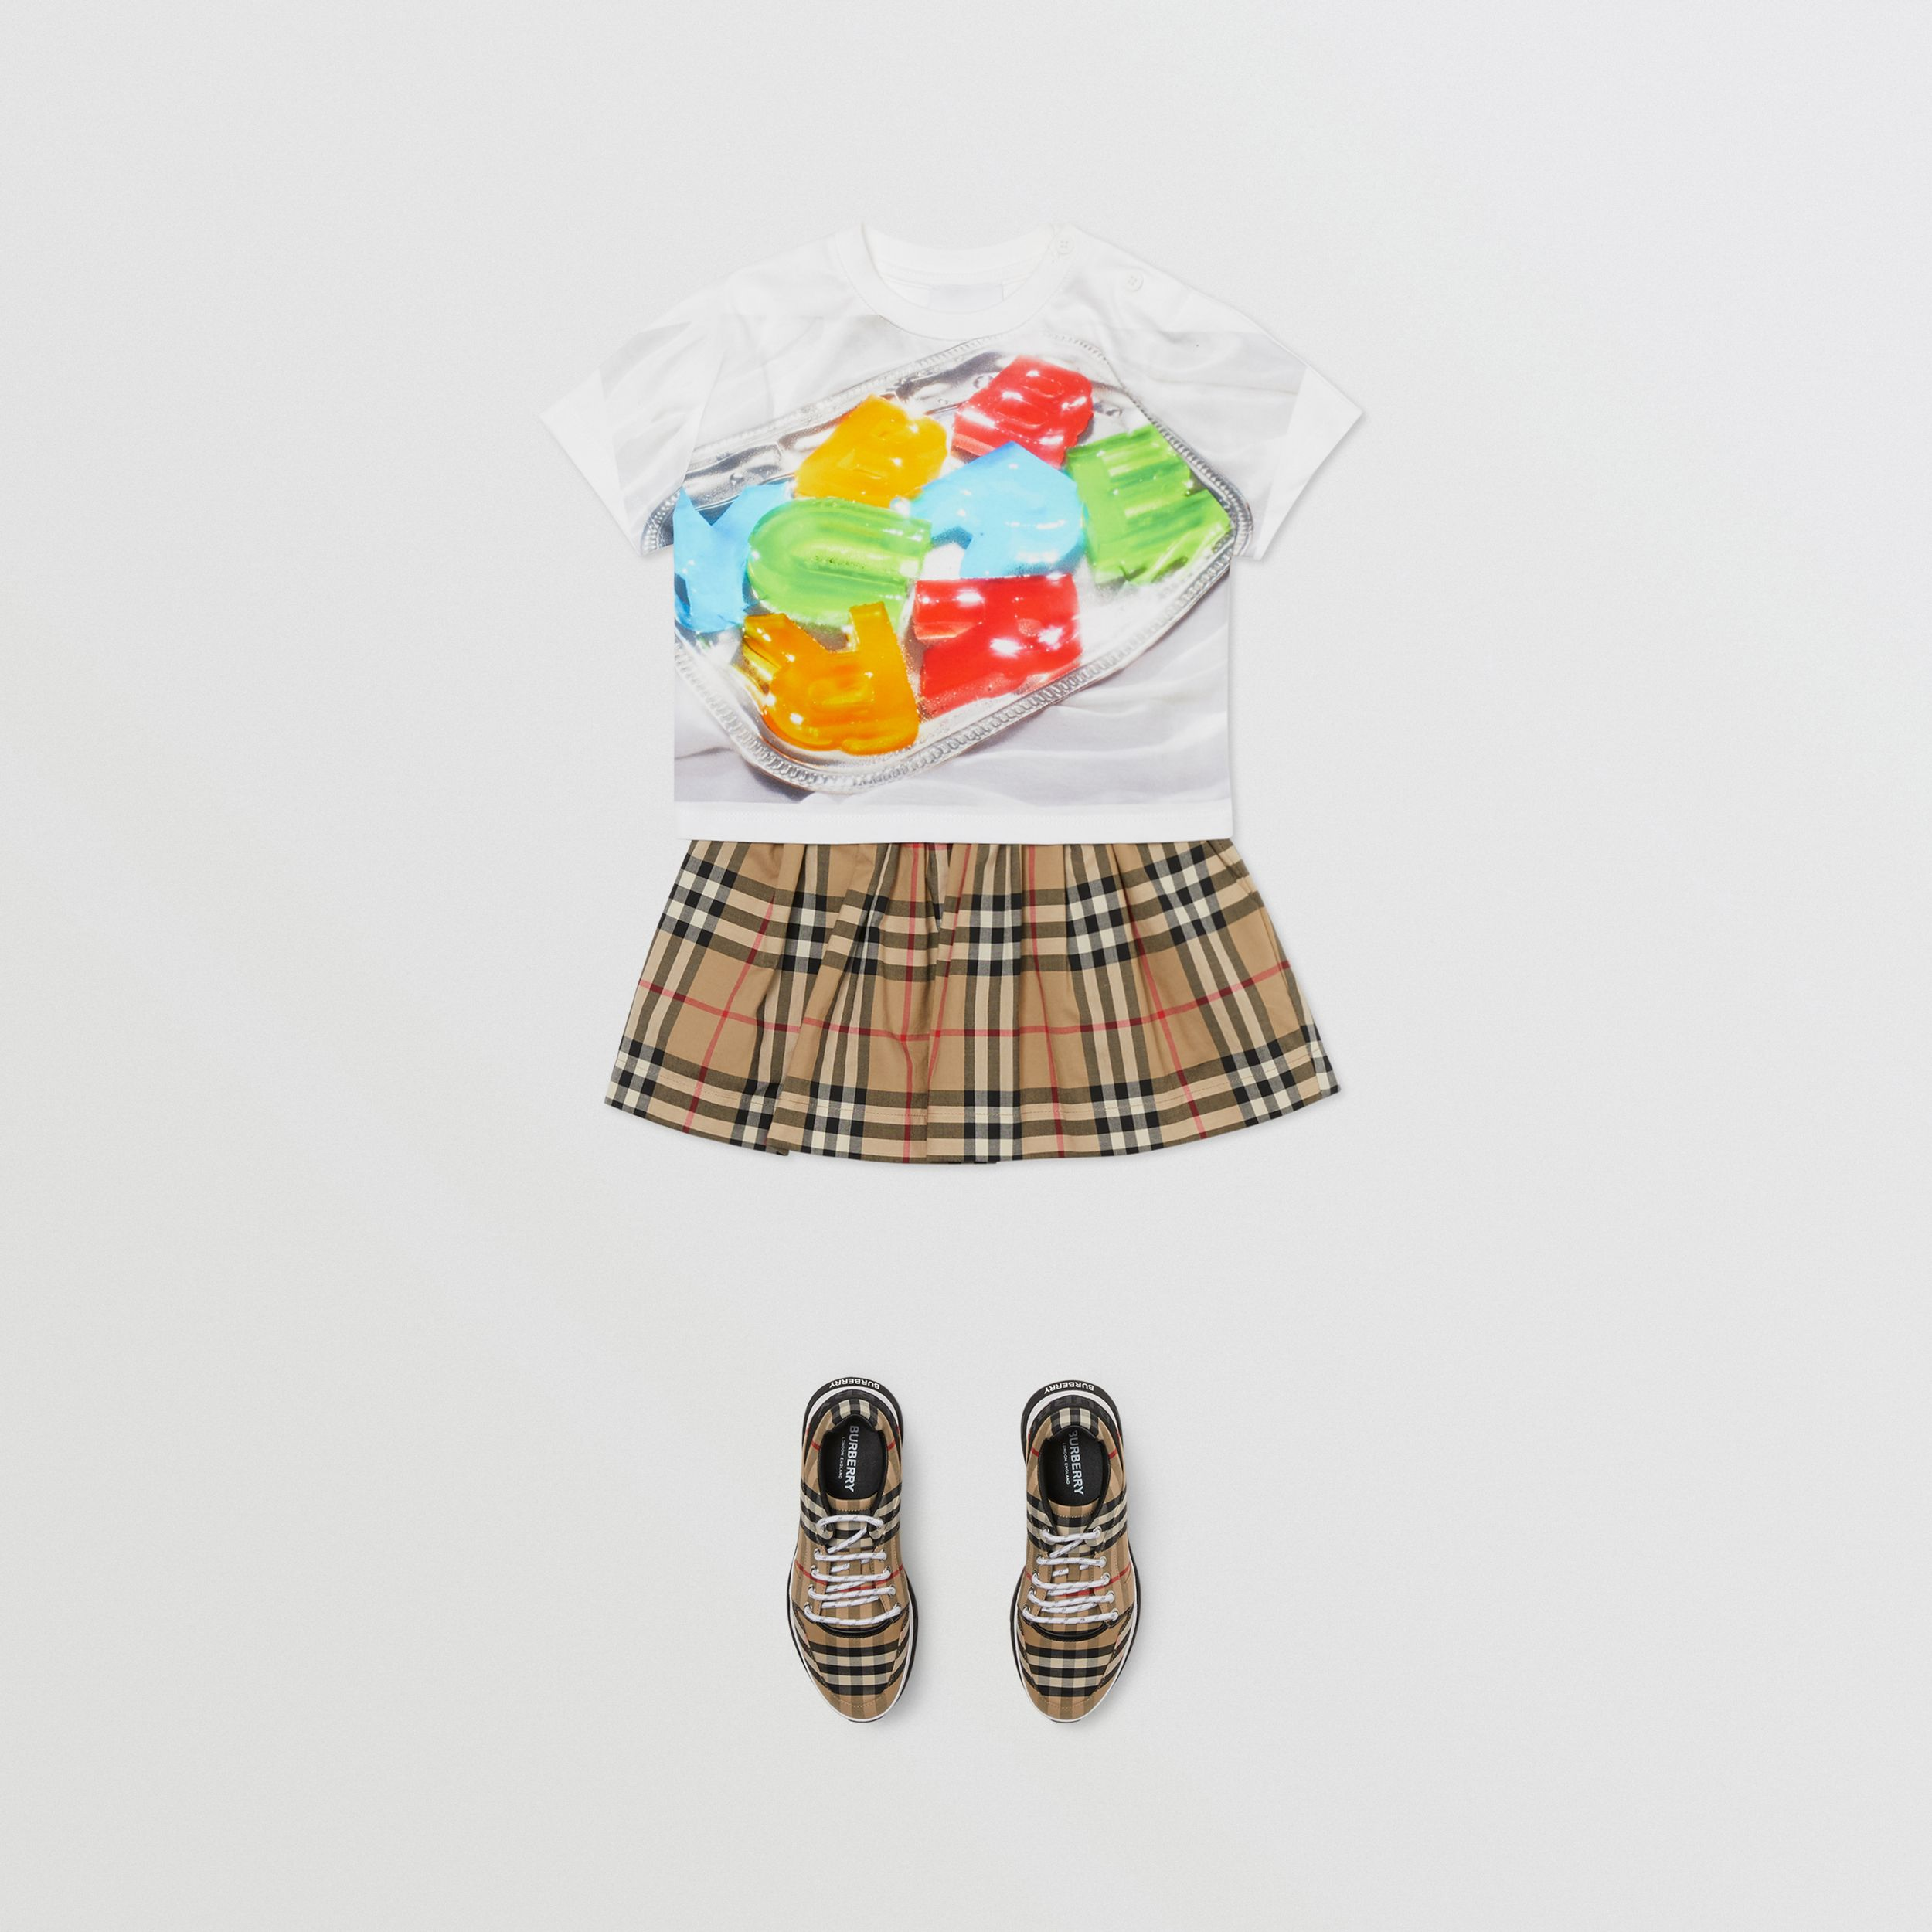 Confectionery Print Cotton T-shirt in Multicolour - Children | Burberry - 3